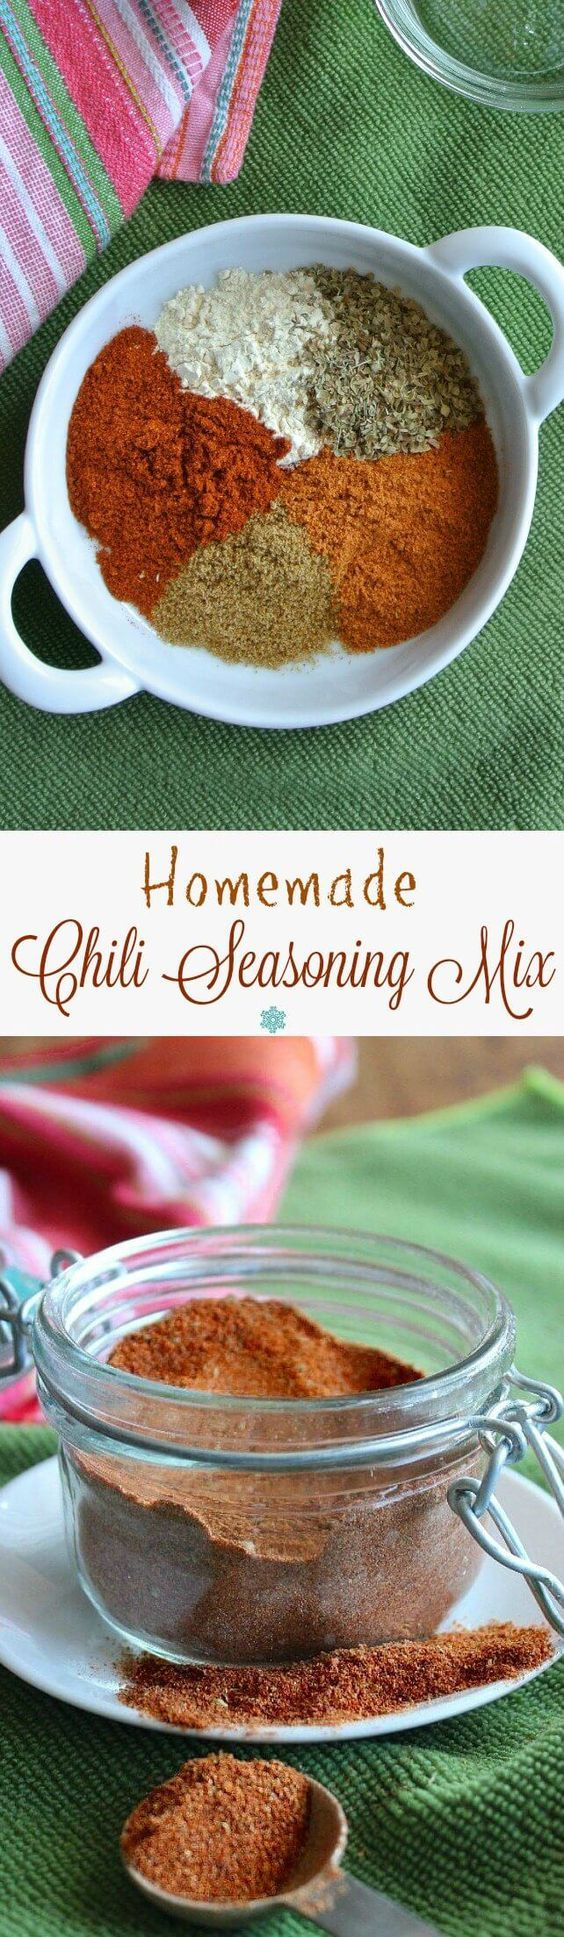 Homemade Chili Seasoning Mix is so easy. Two tablespoons equals one of those packets you buy at the store. Use it in chilies, tacos, casseroles, bean patty mixes and more!